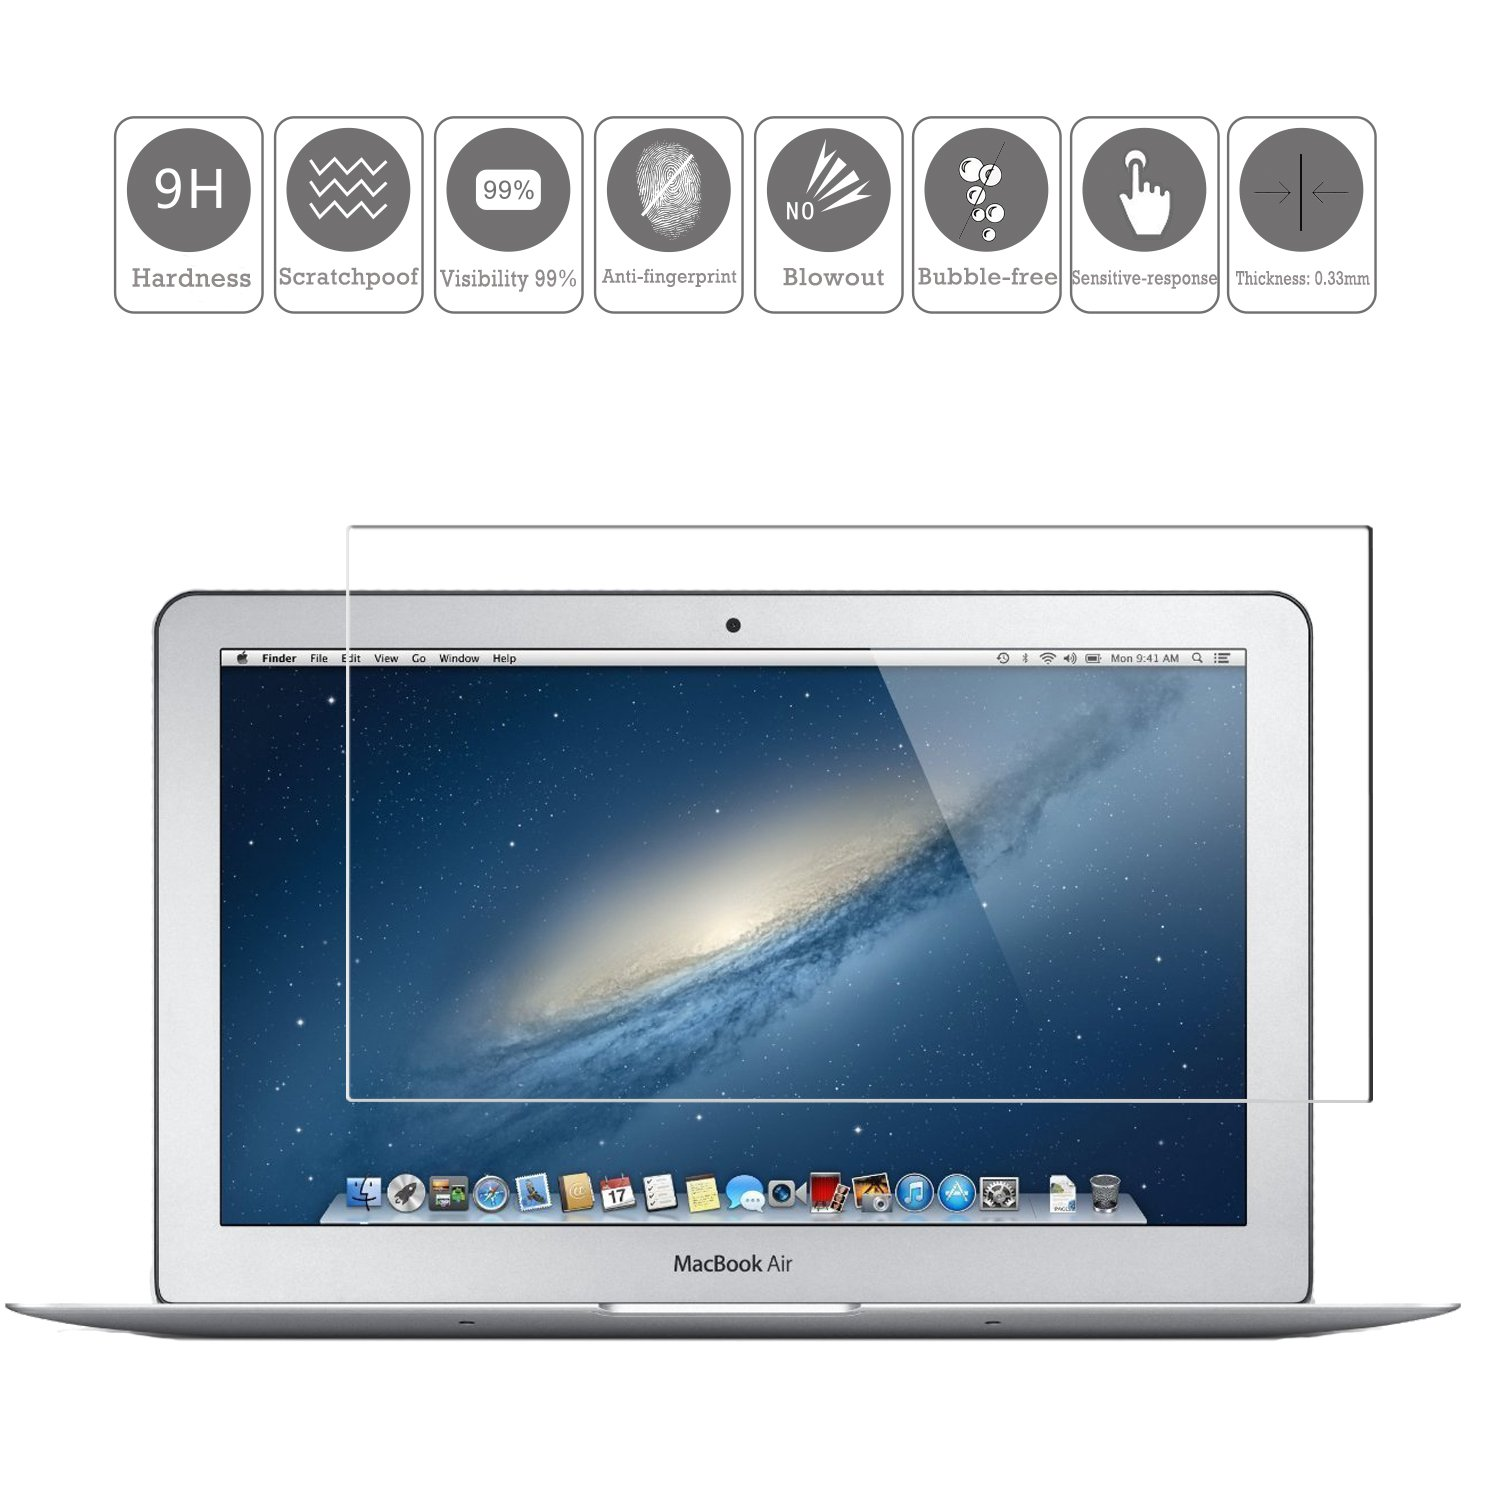 """KTTWO Macbook Air 11 Screen Protector Glass, 9H HD Anti-Scratch Bubble-Free Tempered Glass Screen Protector for Macbook Air 11 A1370/A1465 11.6"""" Screen Laptop"""